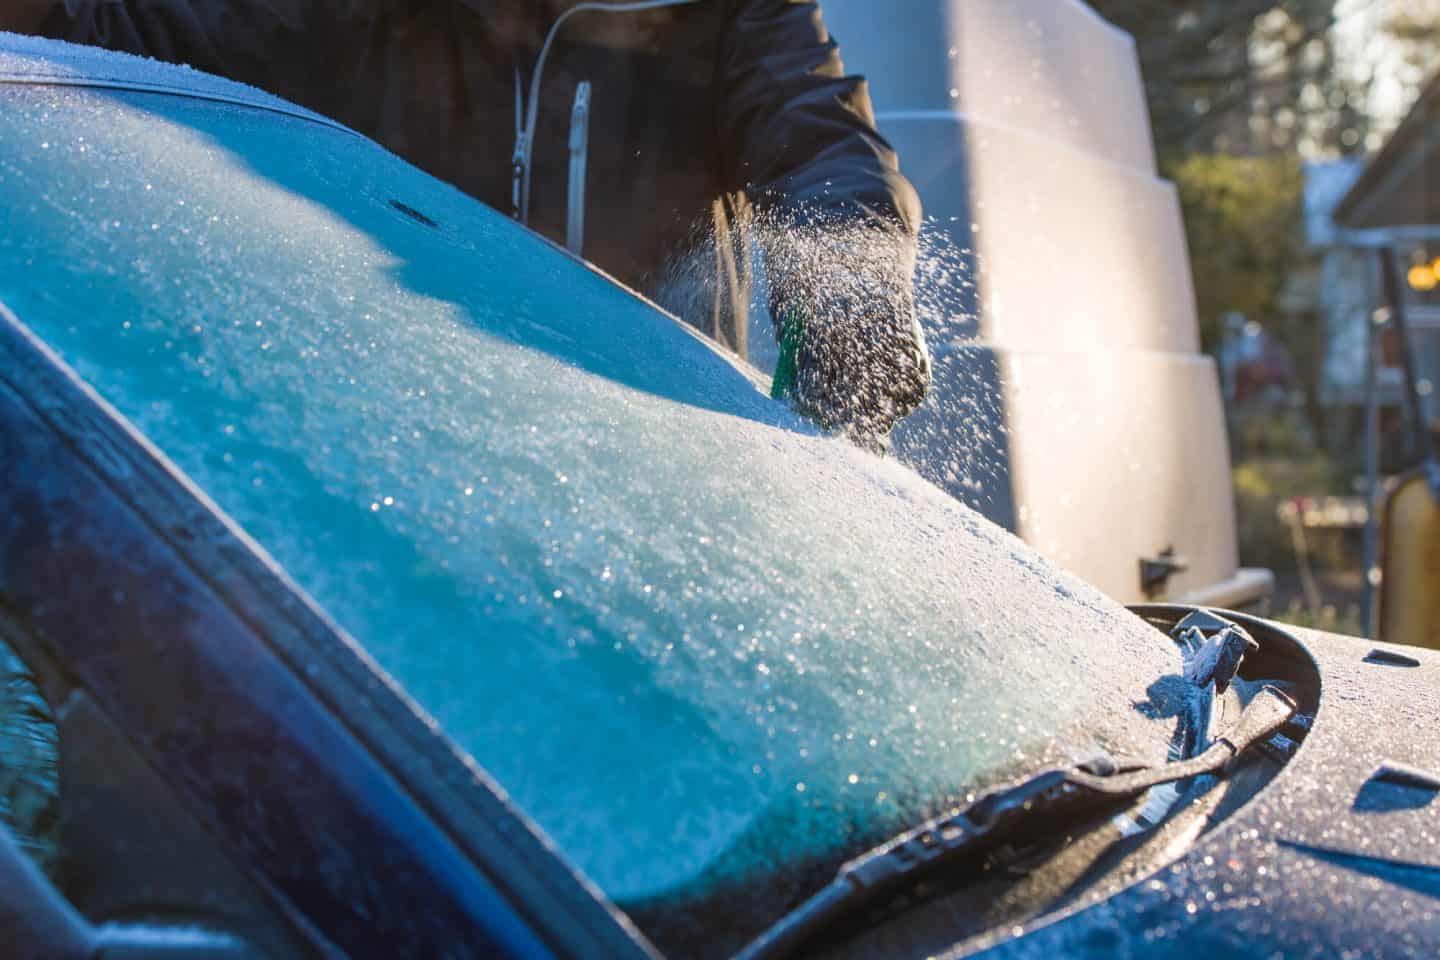 frosty winscreen - TOP TIPS TO MAINTAIN YOUR CAR IN 2019